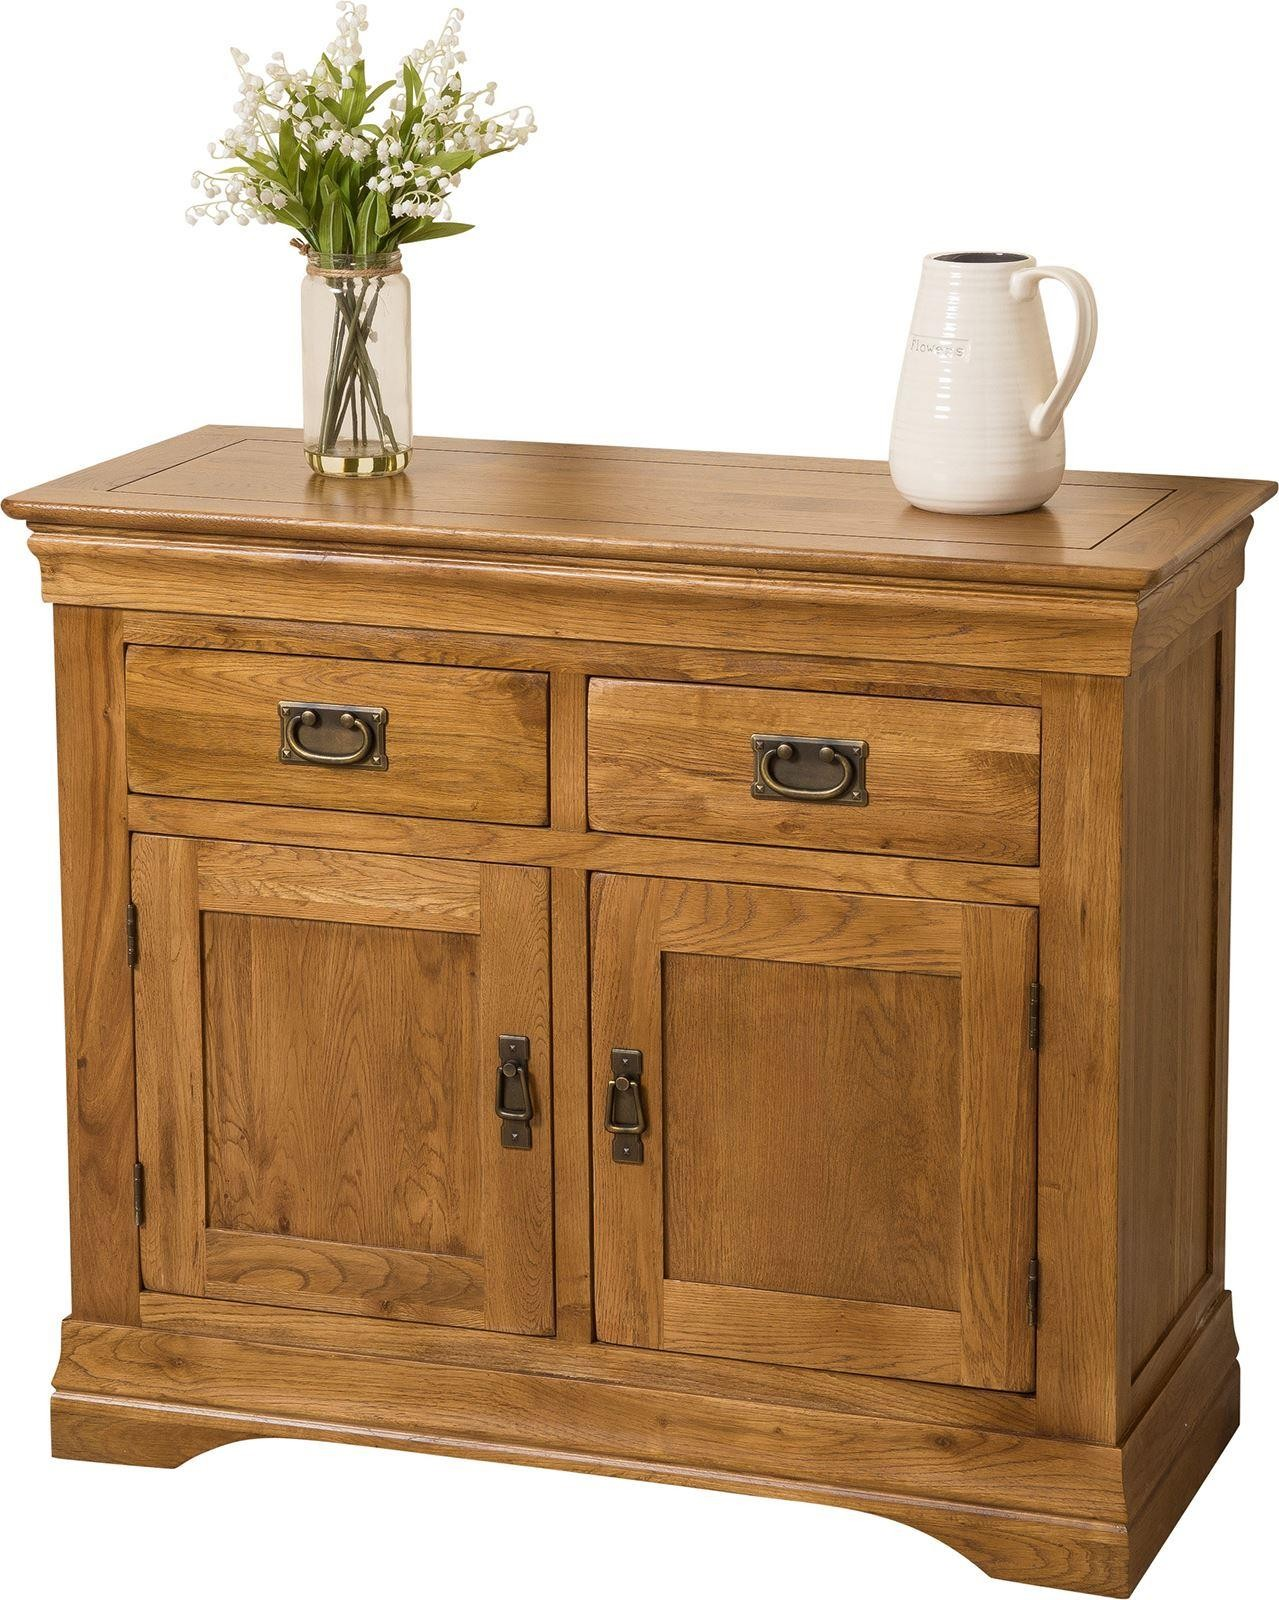 French Chateau Small Sideboard